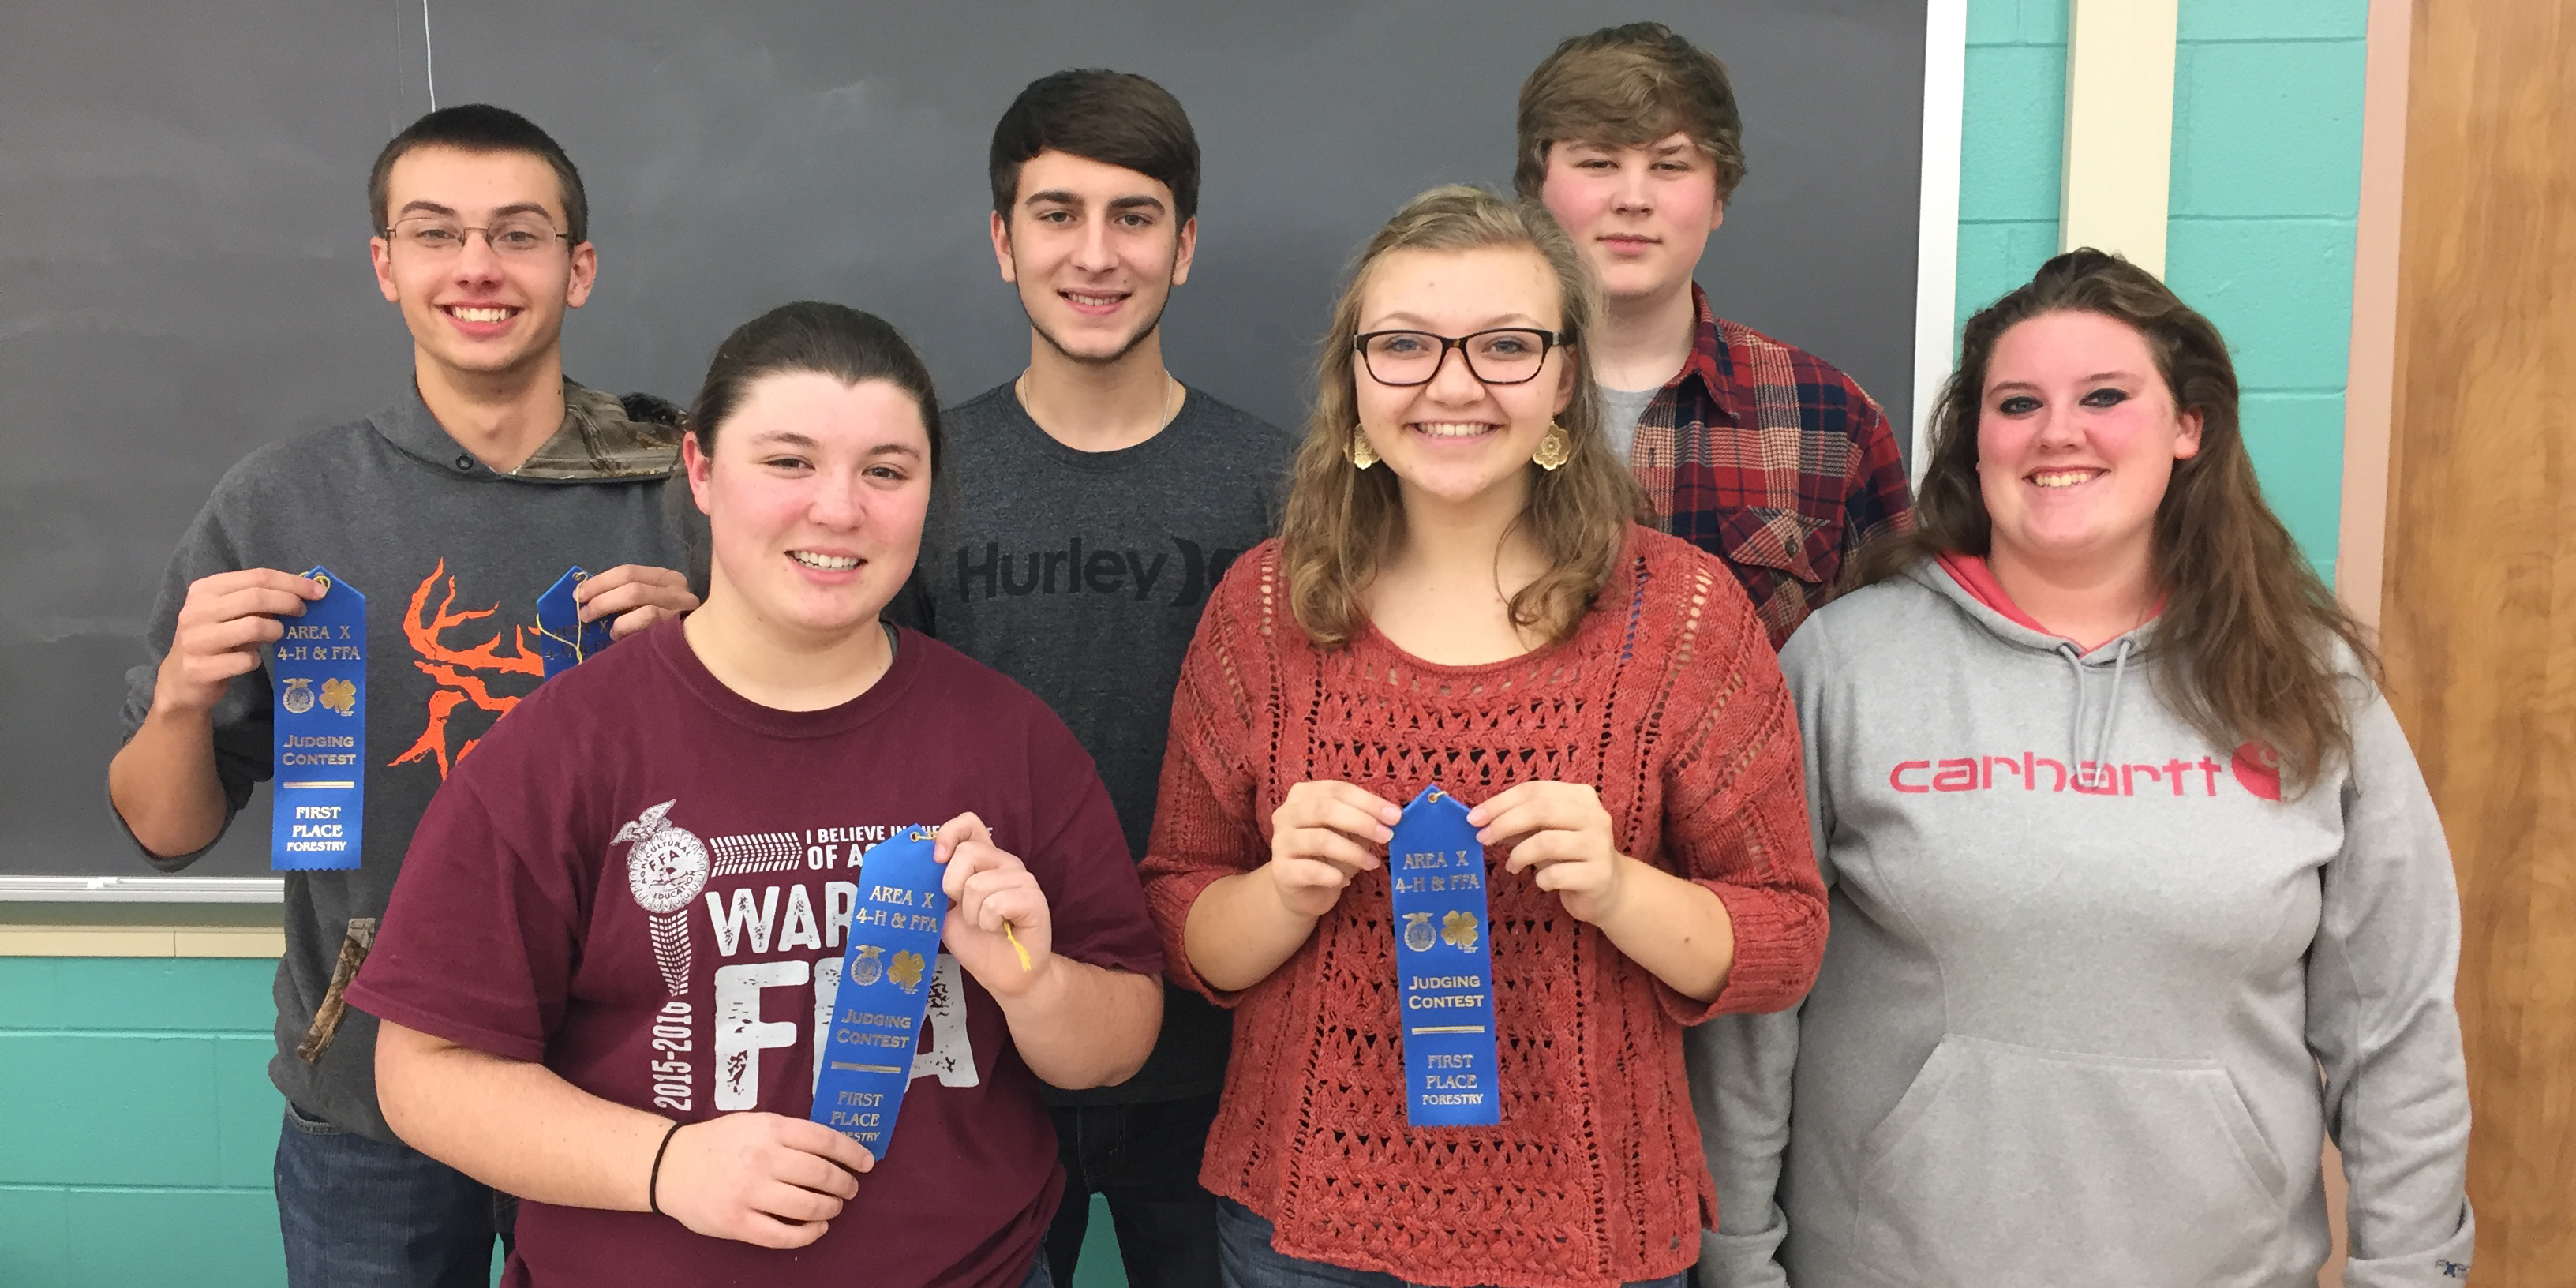 Warsaw FFA Forestry Judging Teams. In front, from left, are Taryn Whetstone, Morgan Smith and Sydney Fox. Back row are Zach Howard, Grant Reed and Jared Wolf.